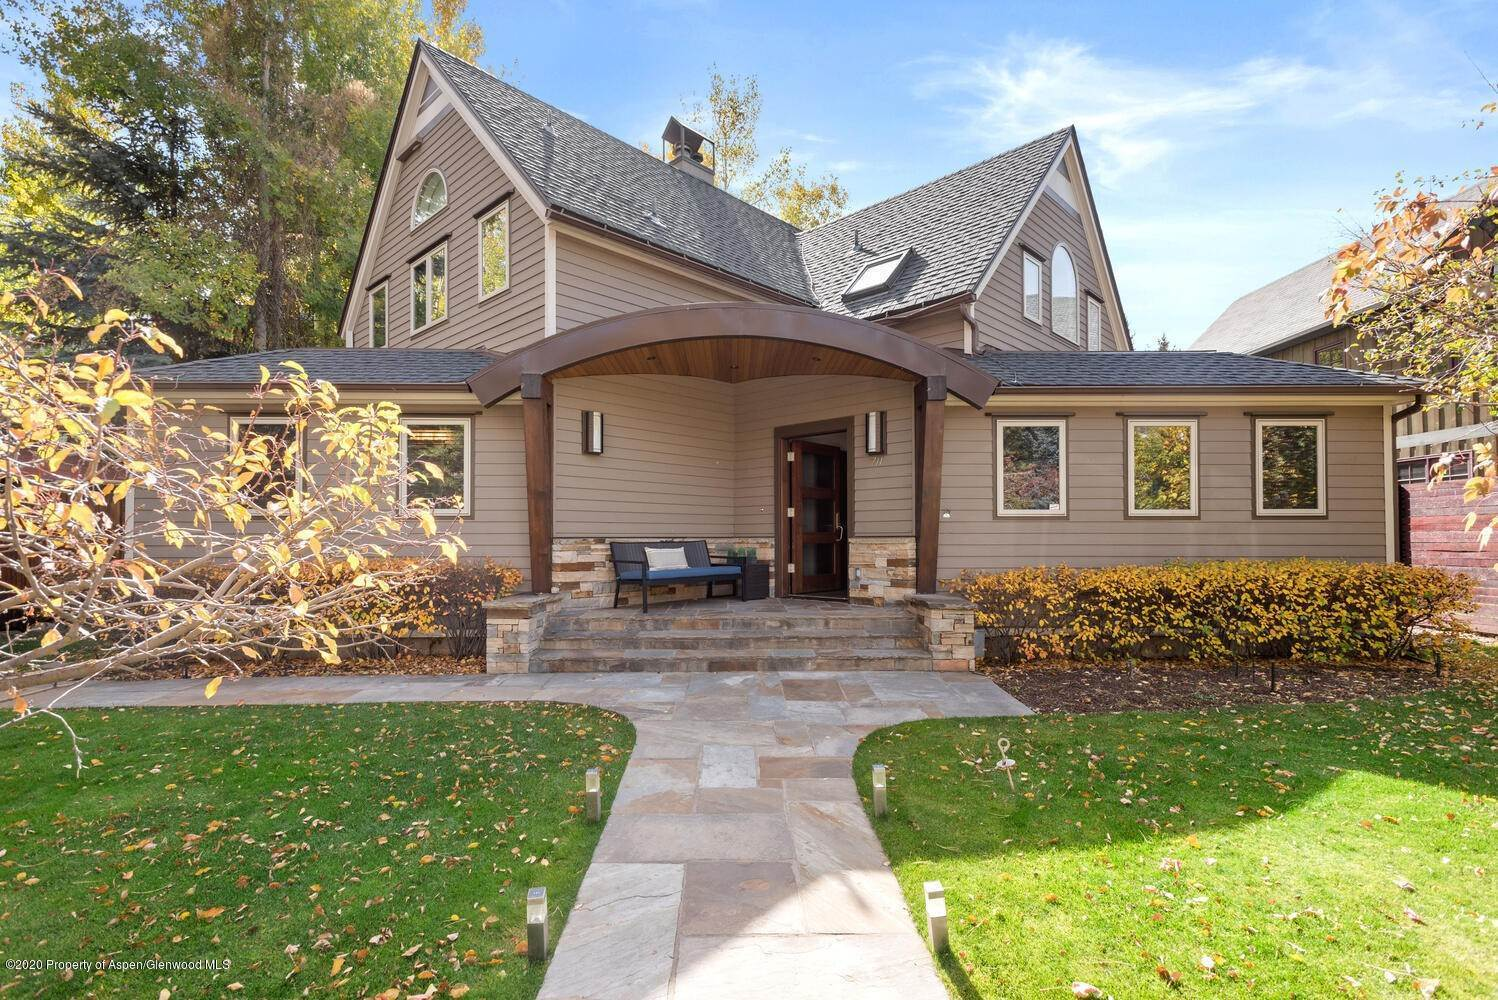 2. Single Family Home for Sale at 711 W Bleeker Street Aspen, Colorado,81611 United States